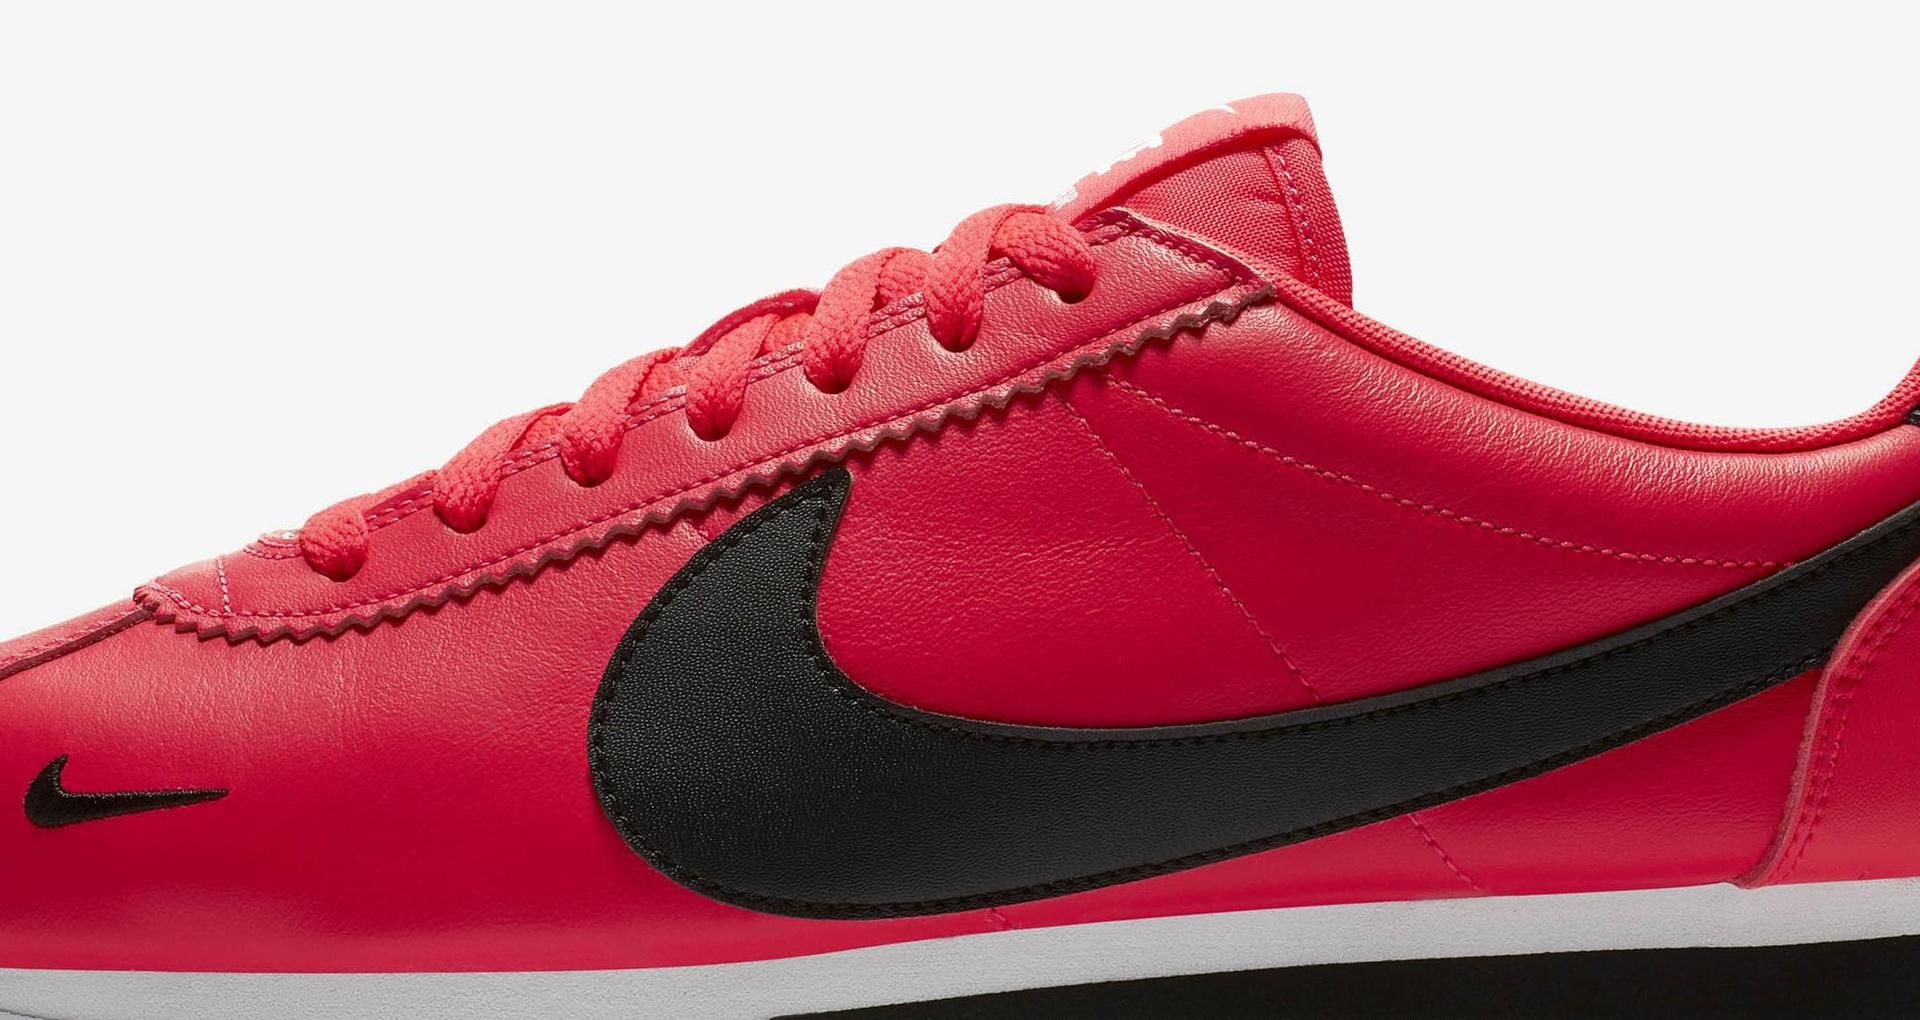 official photos 299a3 39845 ... coupon code for nike classic cortez premium red orbit white black 05307  aaa3c